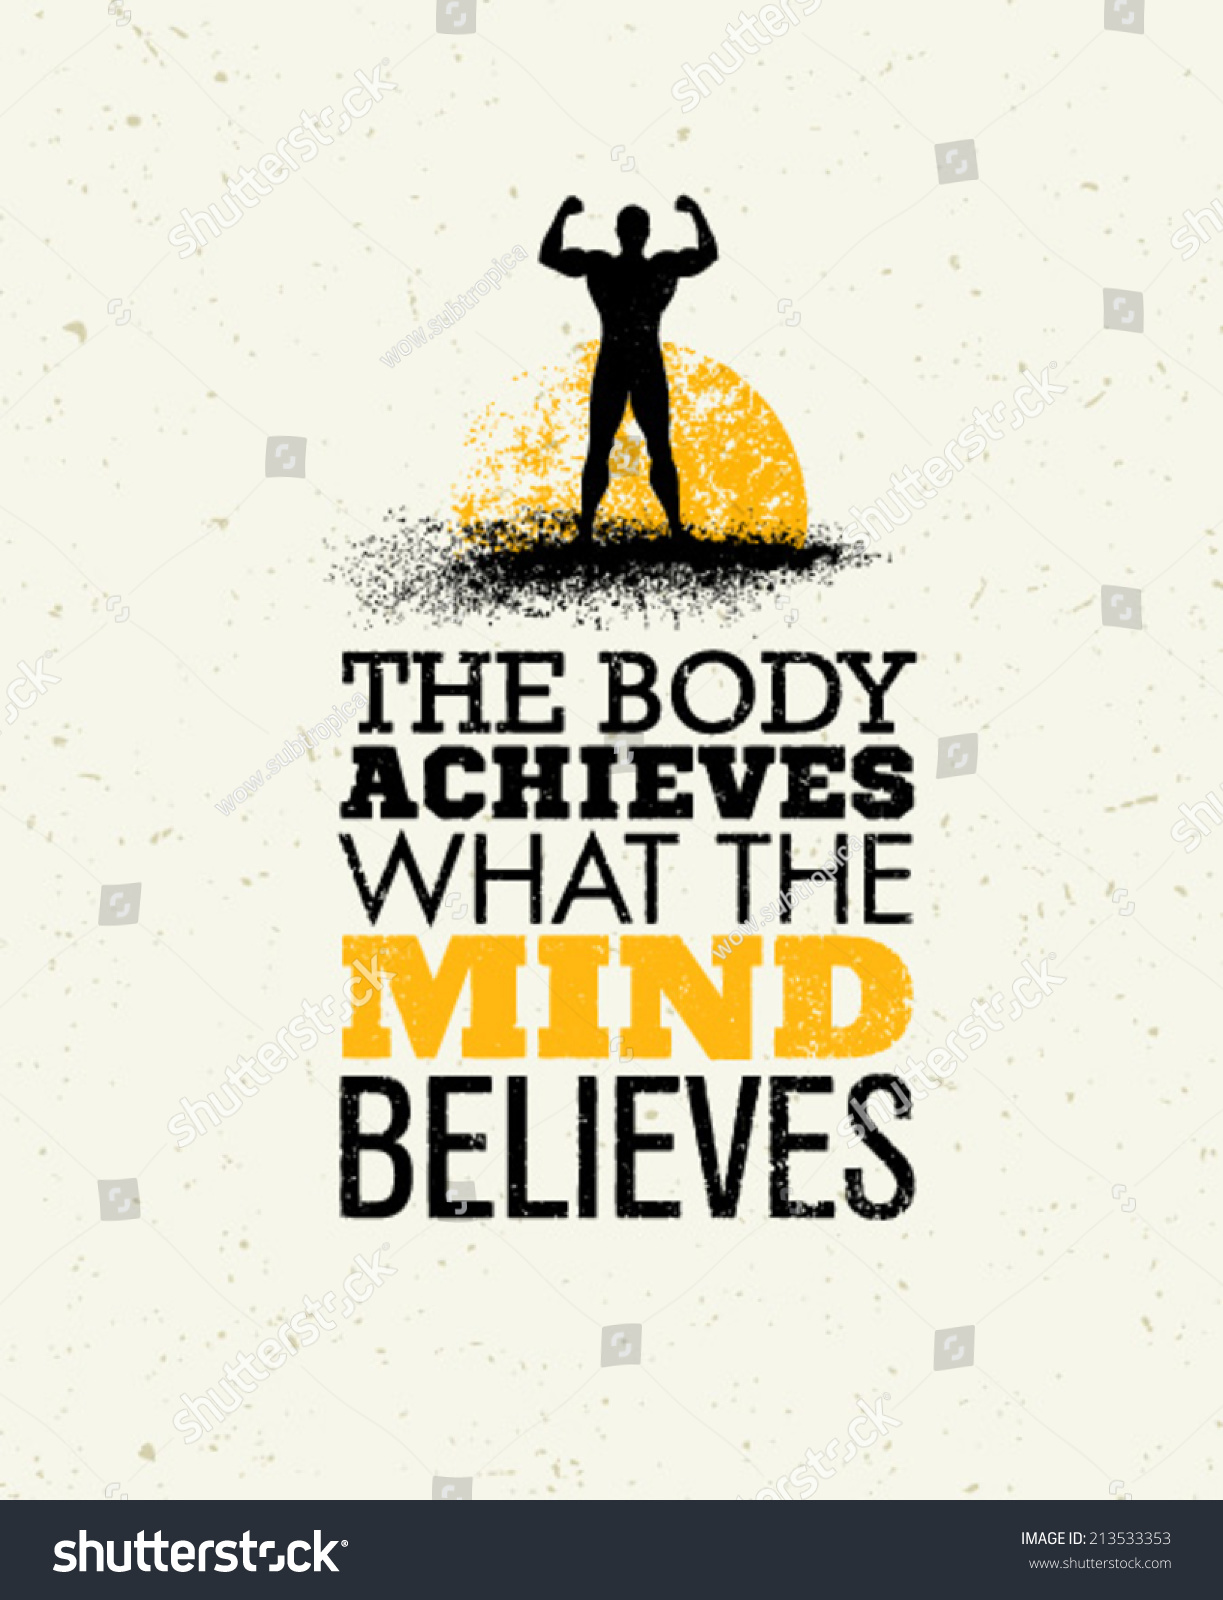 What The Heck Am I Doing The First Month Blogging: Body Achieves What Mind Believes Workout Stock Vector